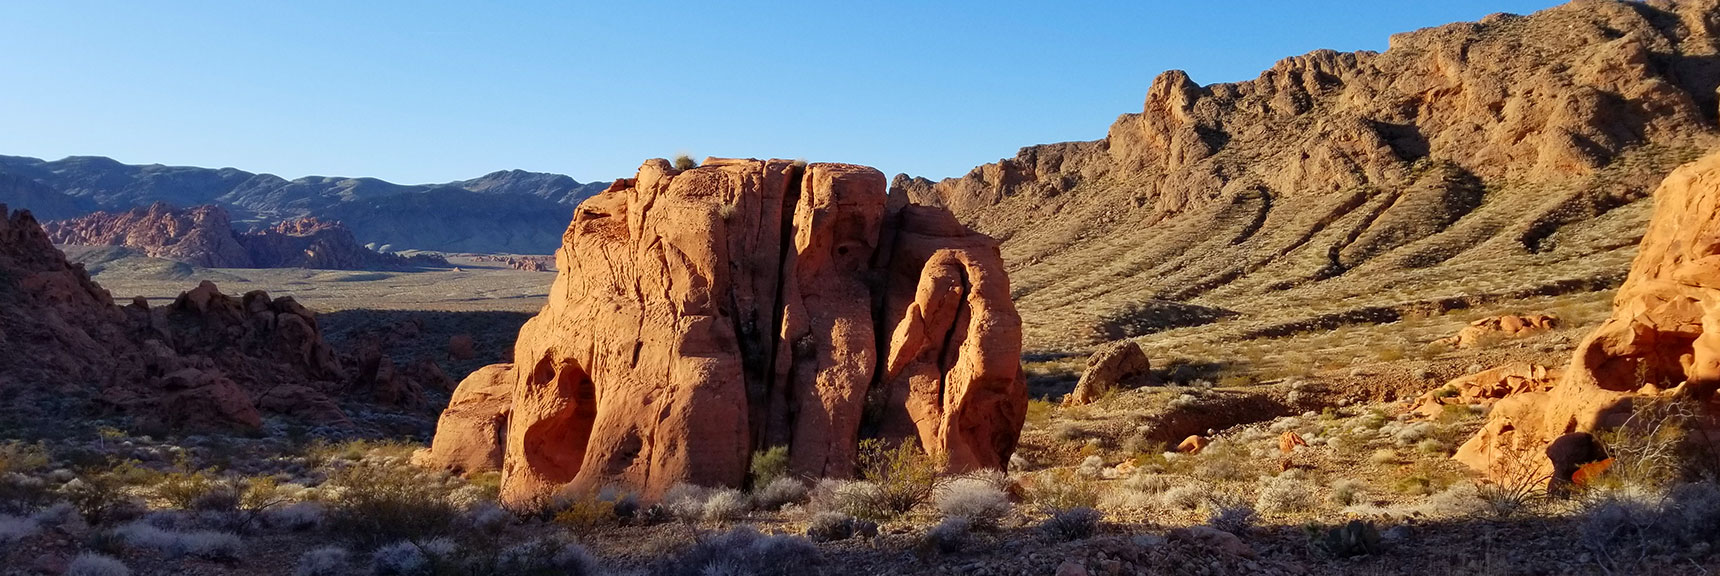 Looking Back South from the Upper Pass on Prospect Trail in Valley of Fire State Park, Nevada